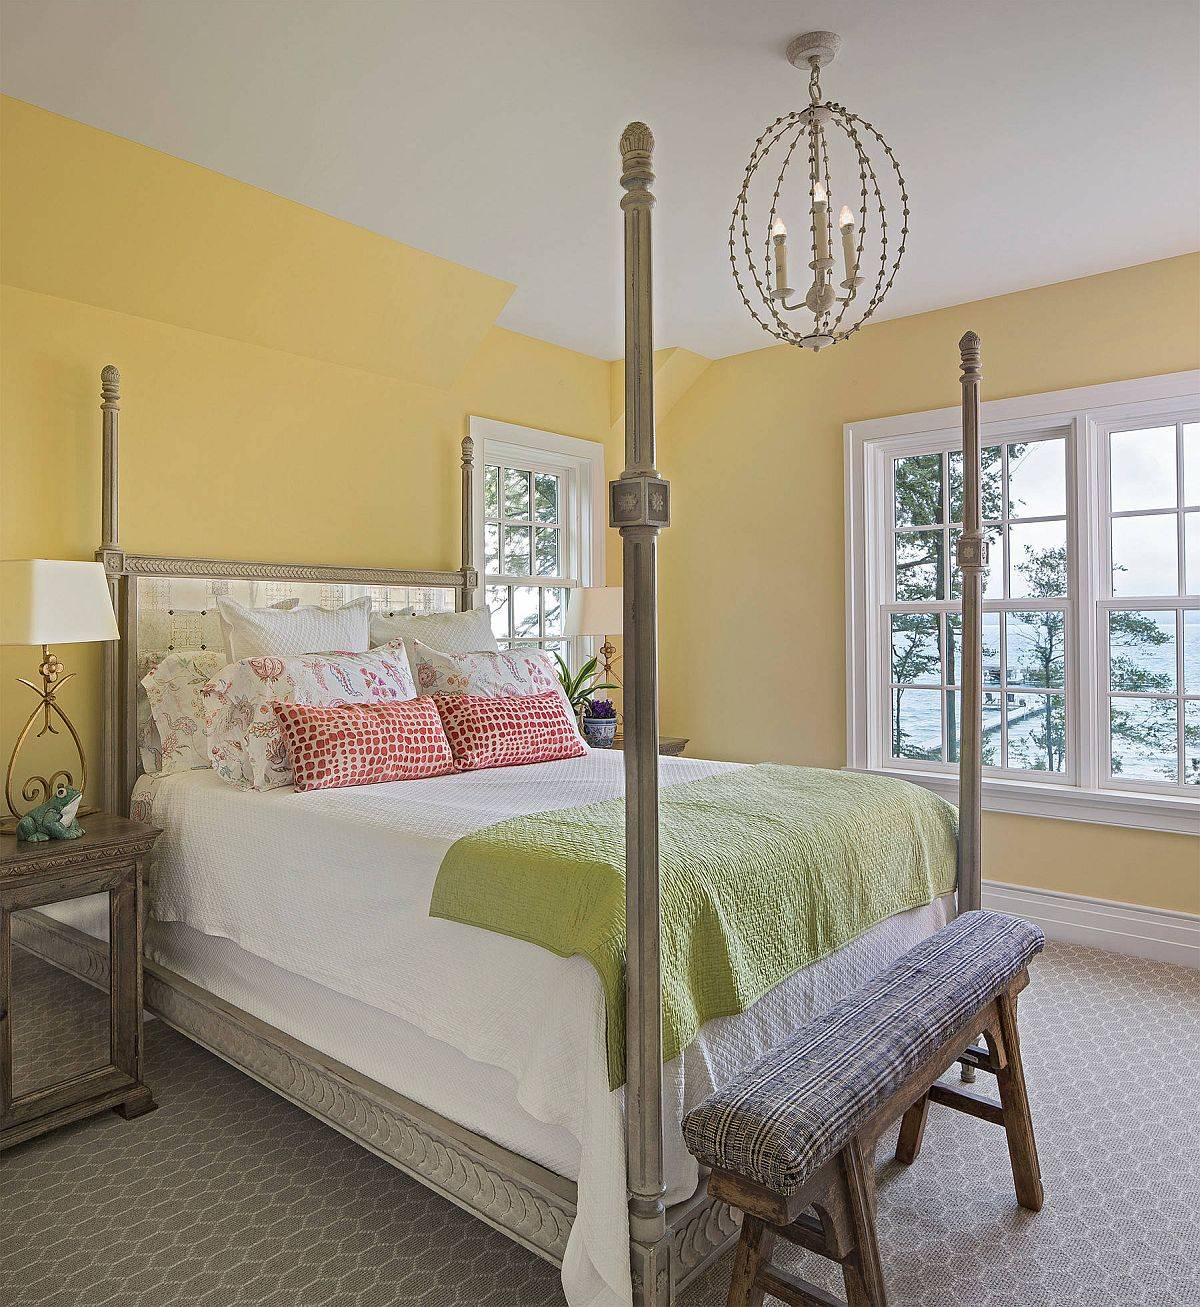 Charming-becah-style-ebdroom-in-yellow-with-beautiful-lighting-99790